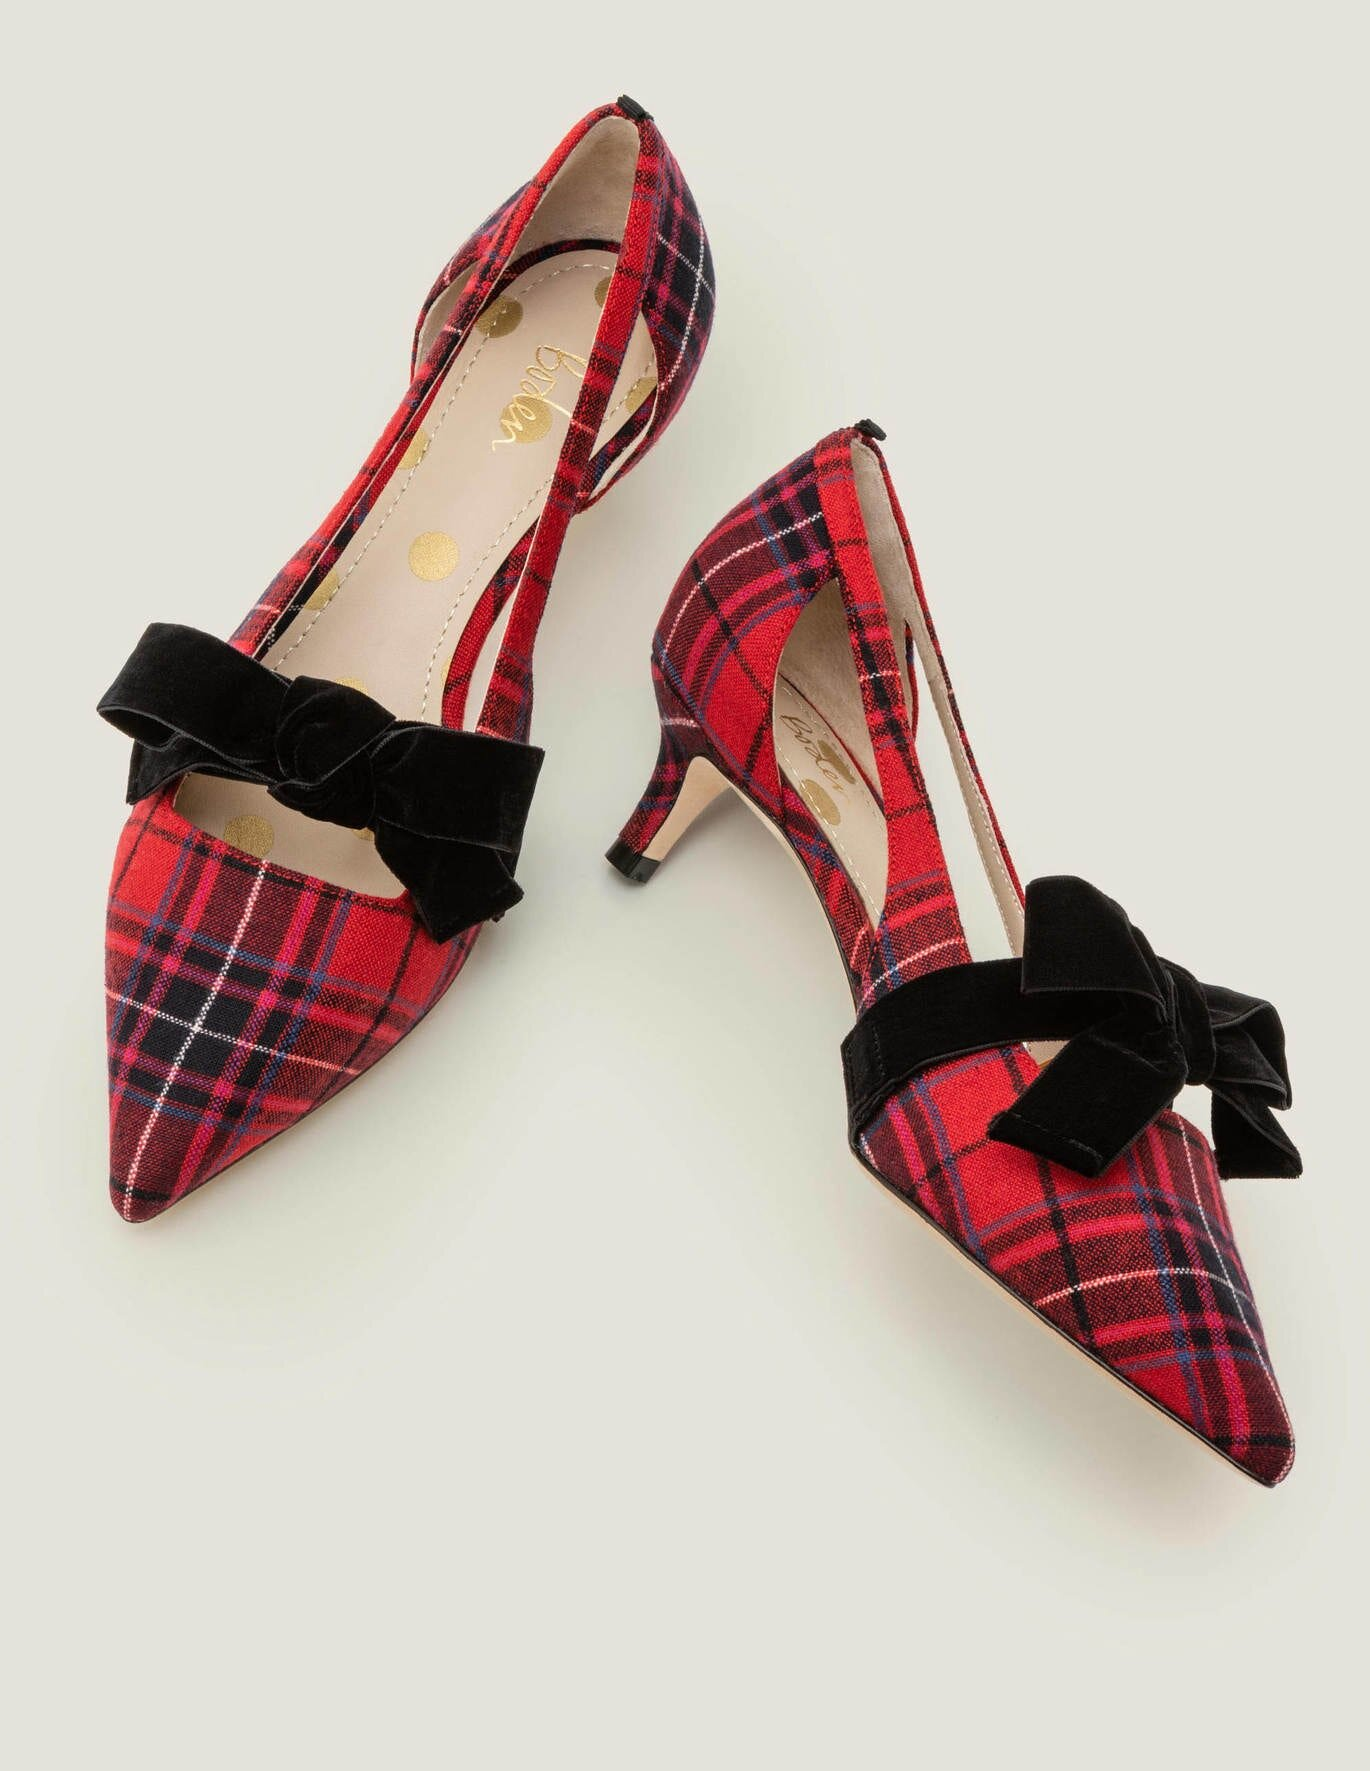 Boden Robyn Kitten Heel (shoes of dreams)